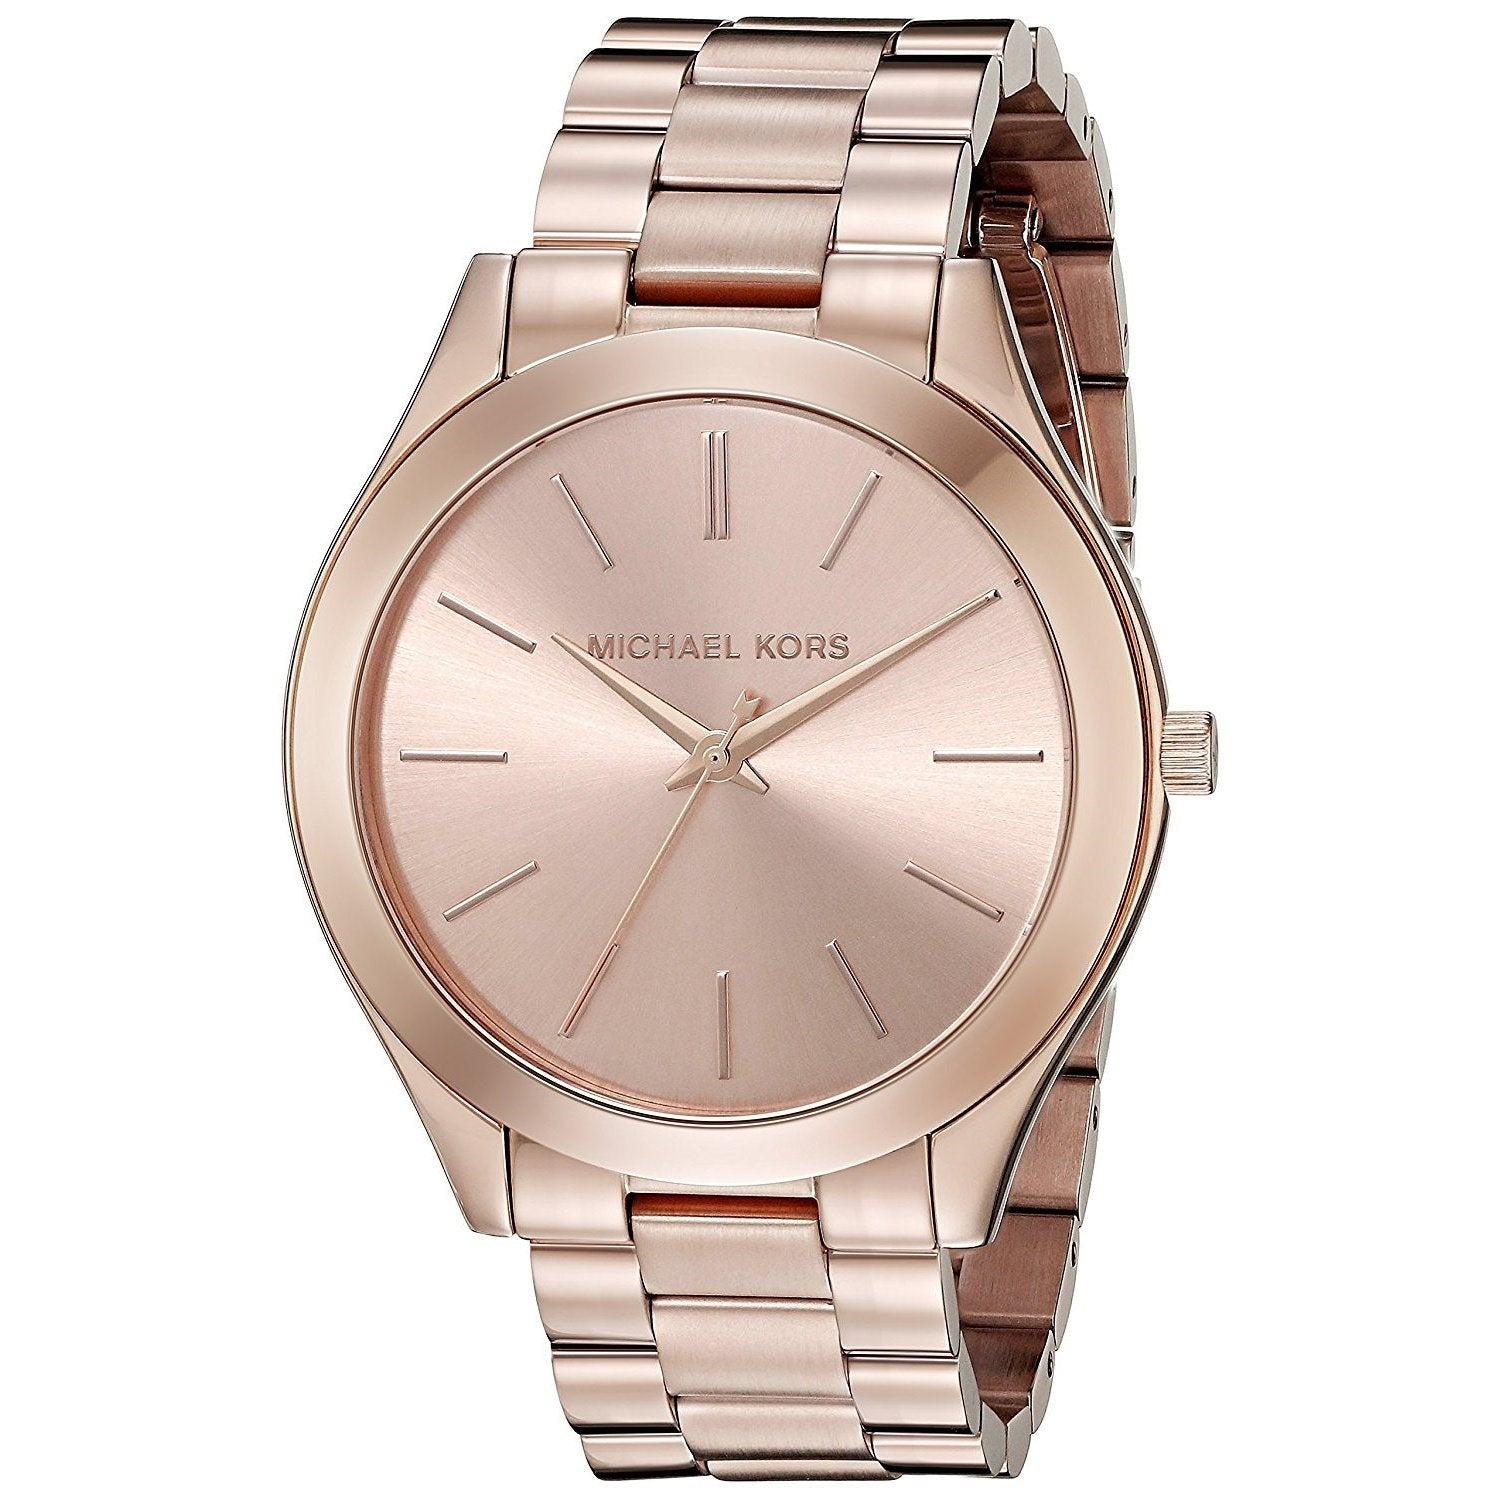 326d7d6c76ea Michael Kors Women s MK3197  Slim Runway  Rose-Tone Stainless Steel ...